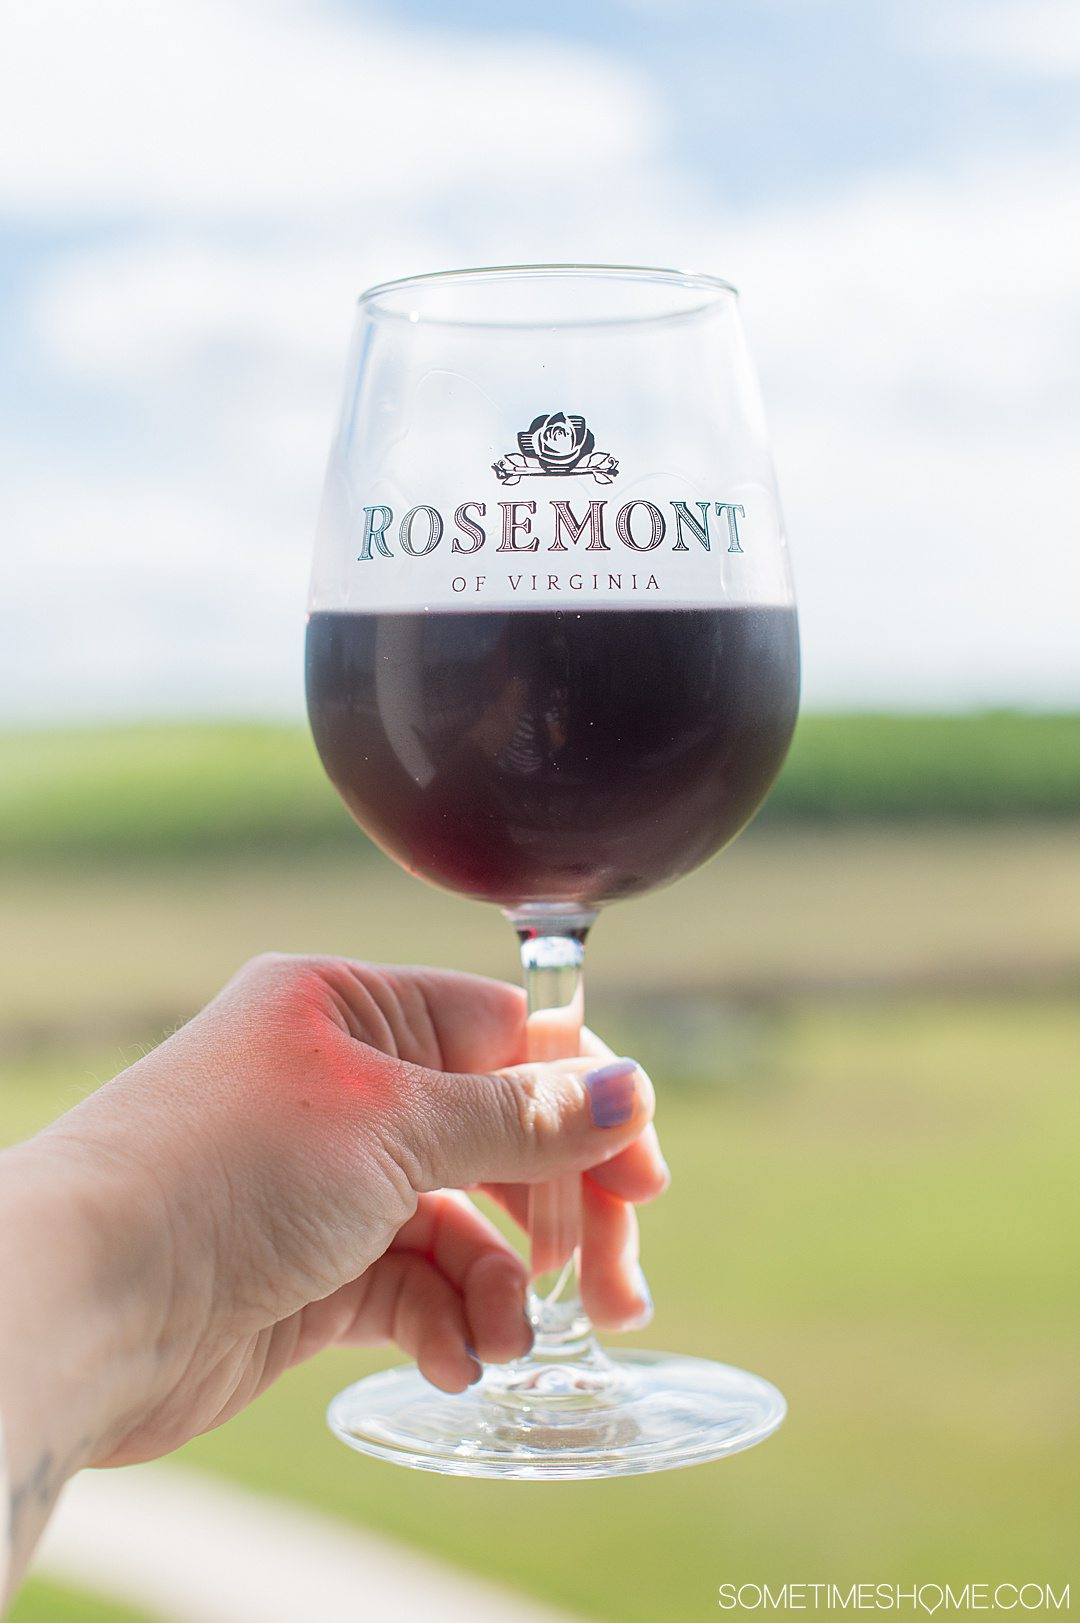 Rosemont vineyard wine glass with red wine and a woman's hand holding it against a blurry background of greenery in Virginia.